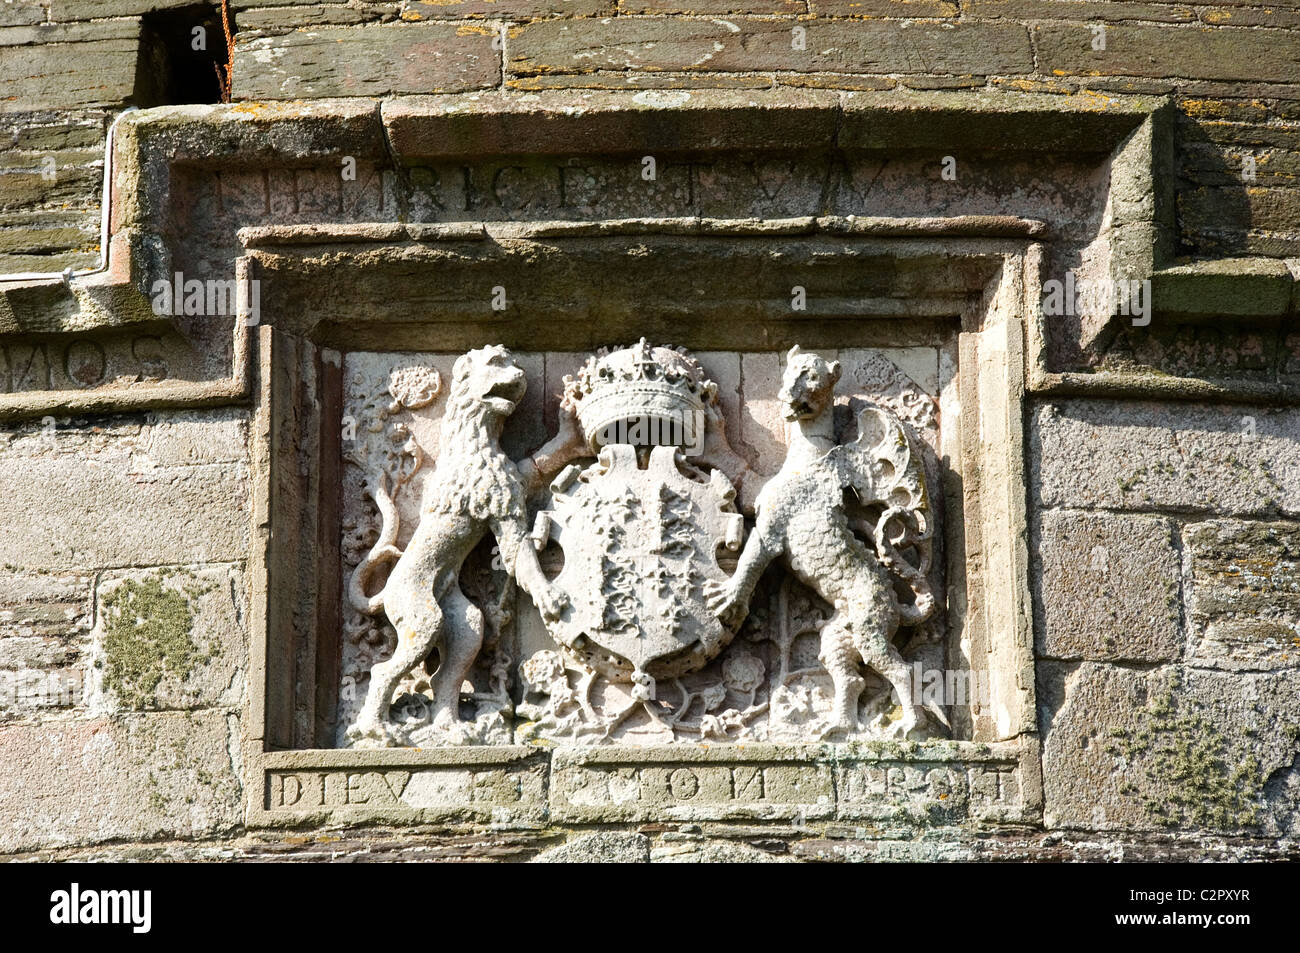 St Mawes Castle. Detail of the coat of arms which appears above the entrance to the castle. Stock Photo